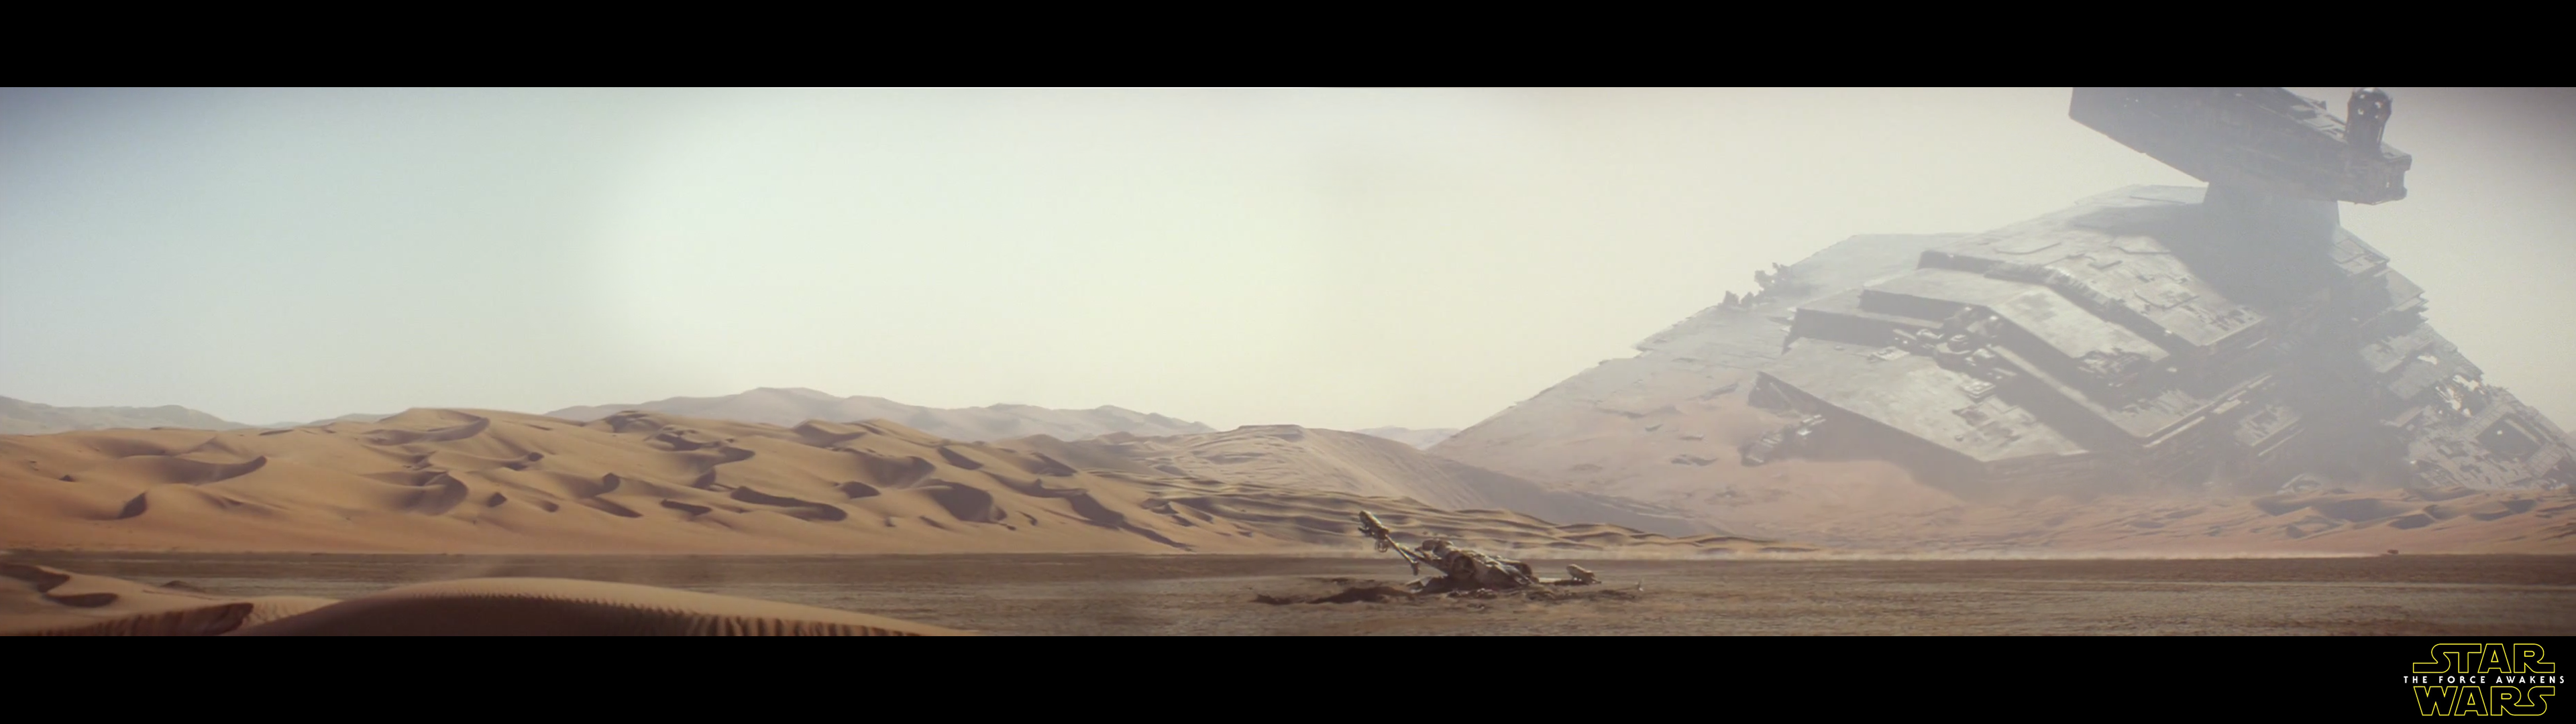 Dual Screen Png Star Wars Free Dual Screen Star Wars Png Transparent Images Pngio